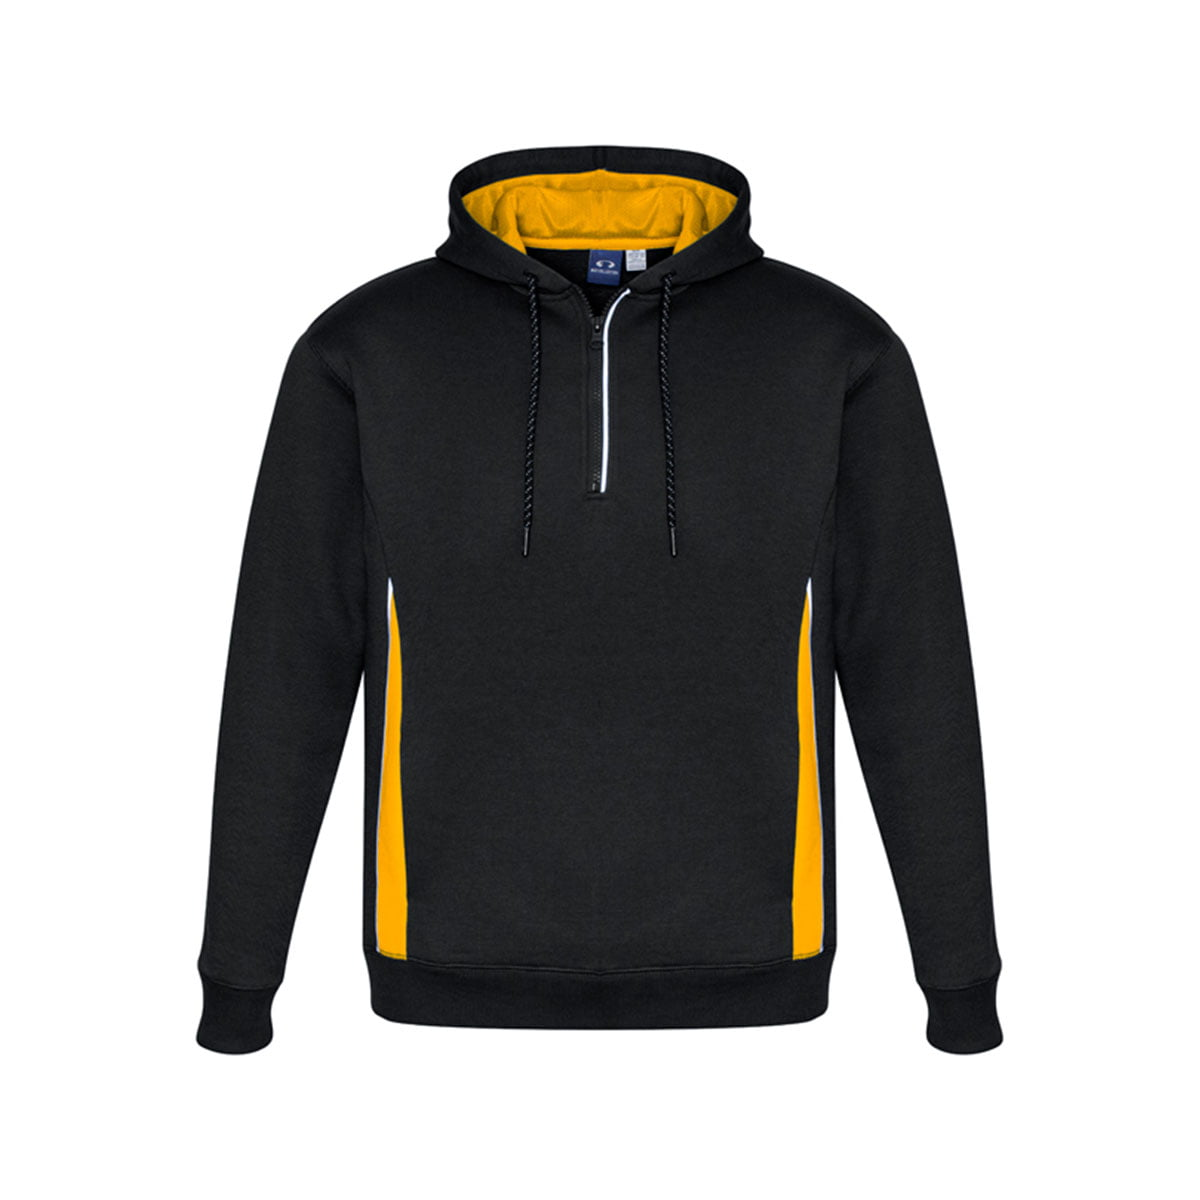 Adults Renegade Hoodie-Black / Gold / Silver